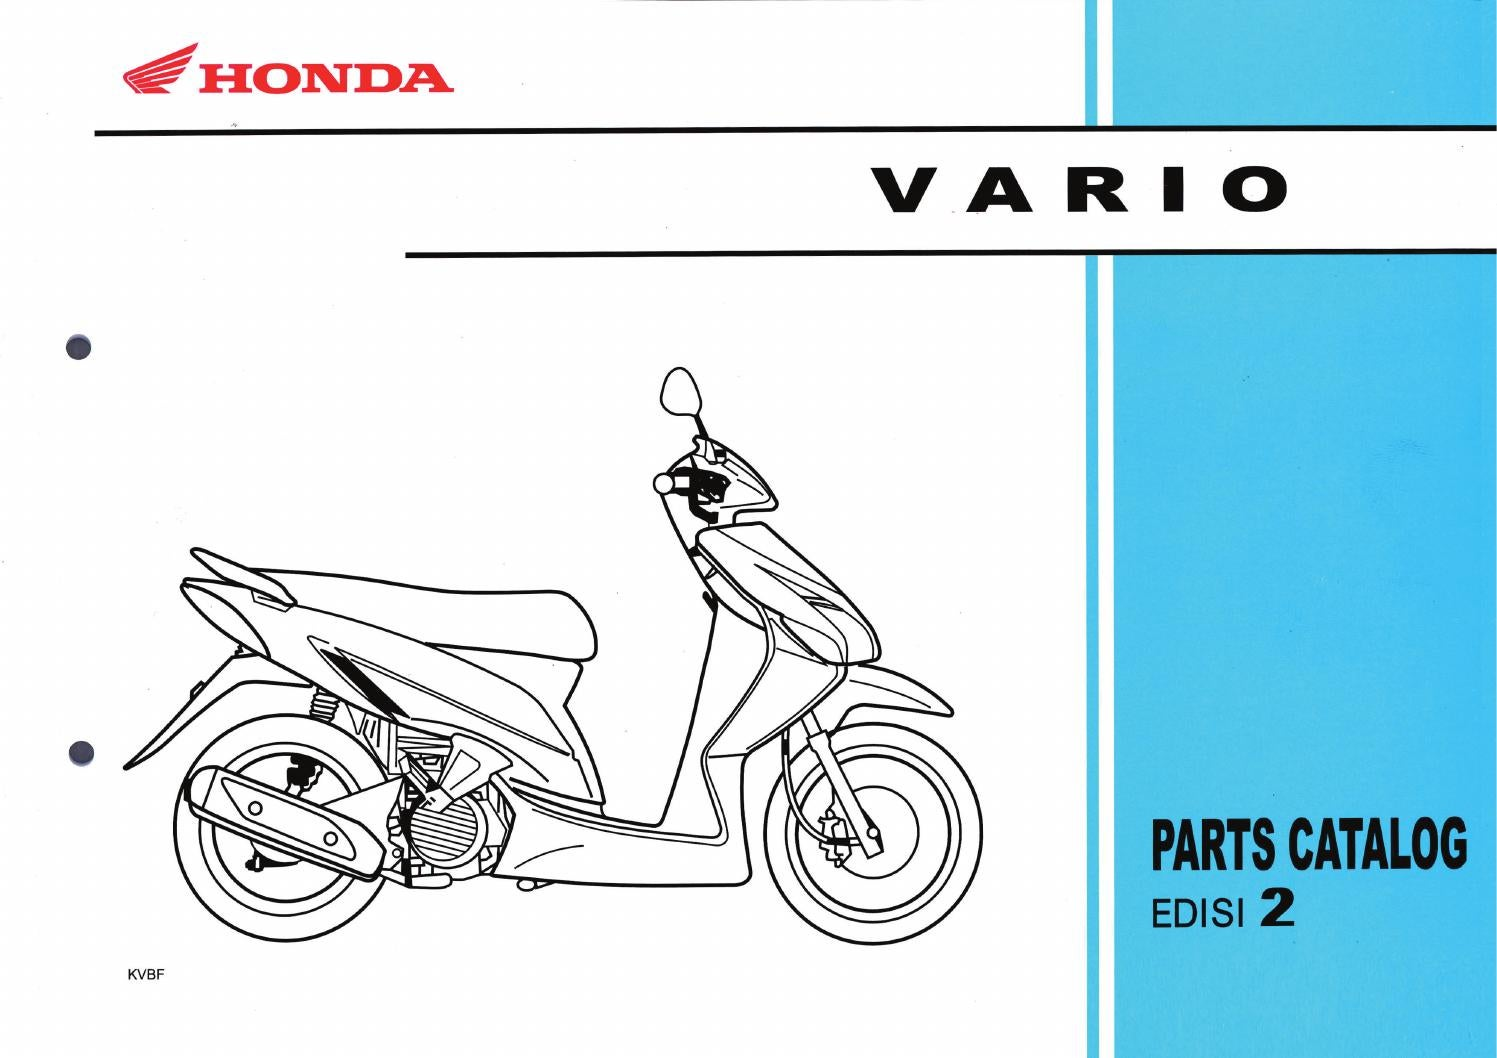 Part catalog honda vario by ahass tunasjaya issuu asfbconference2016 Choice Image